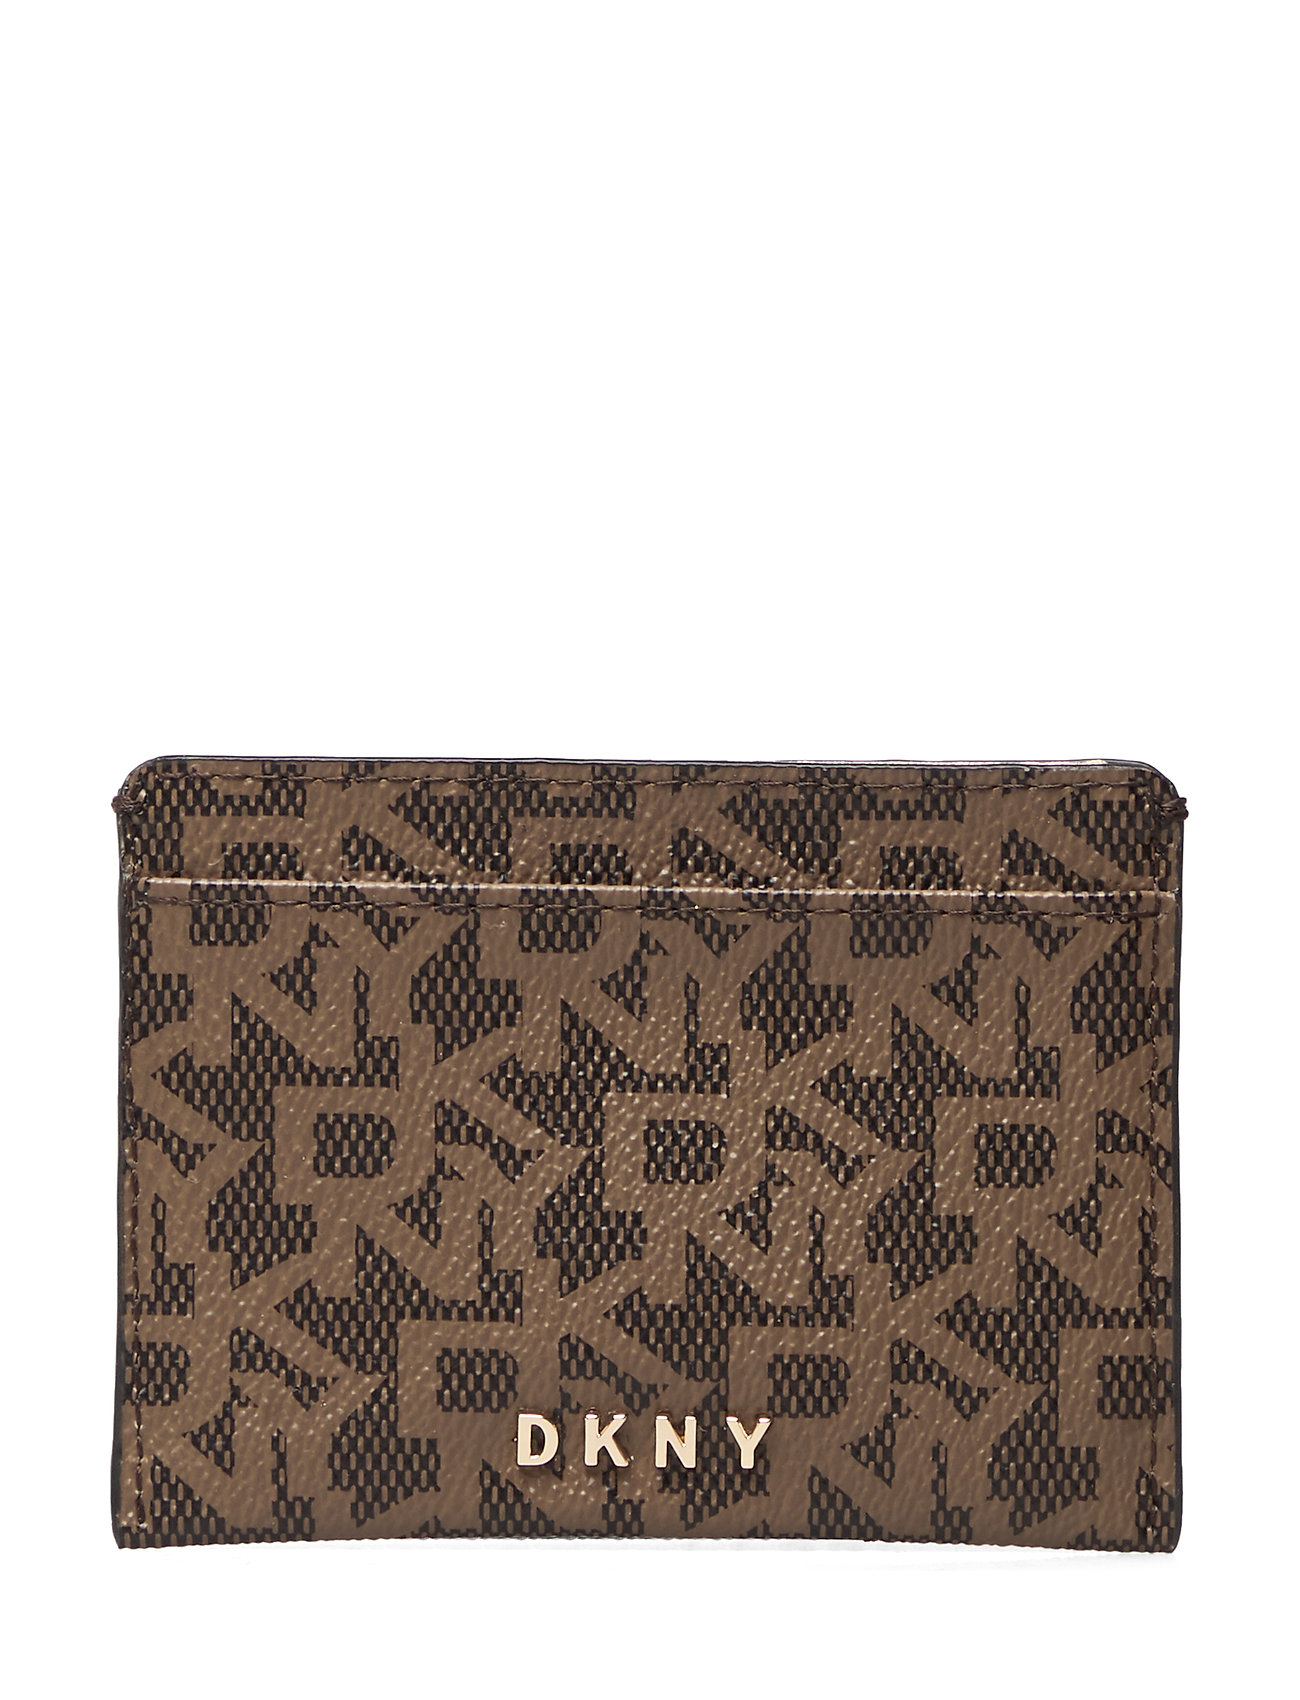 Image of Bryant-Card Holder-L Bags Card Holders & Wallets Card Holder Brun DKNY Bags (3305106537)